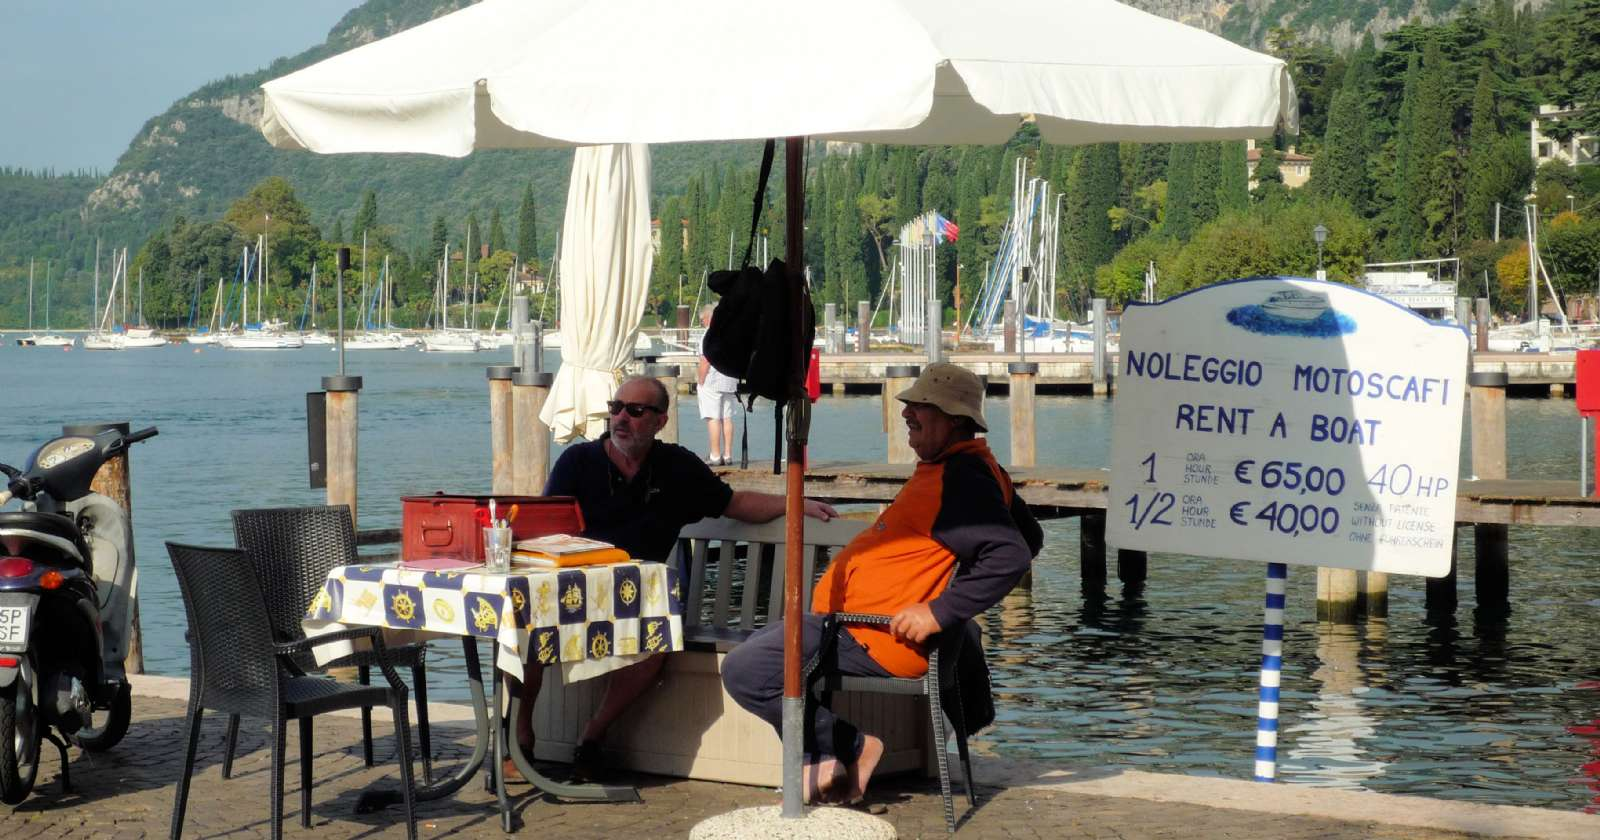 You can also rent your own boat from the harbour in Garda